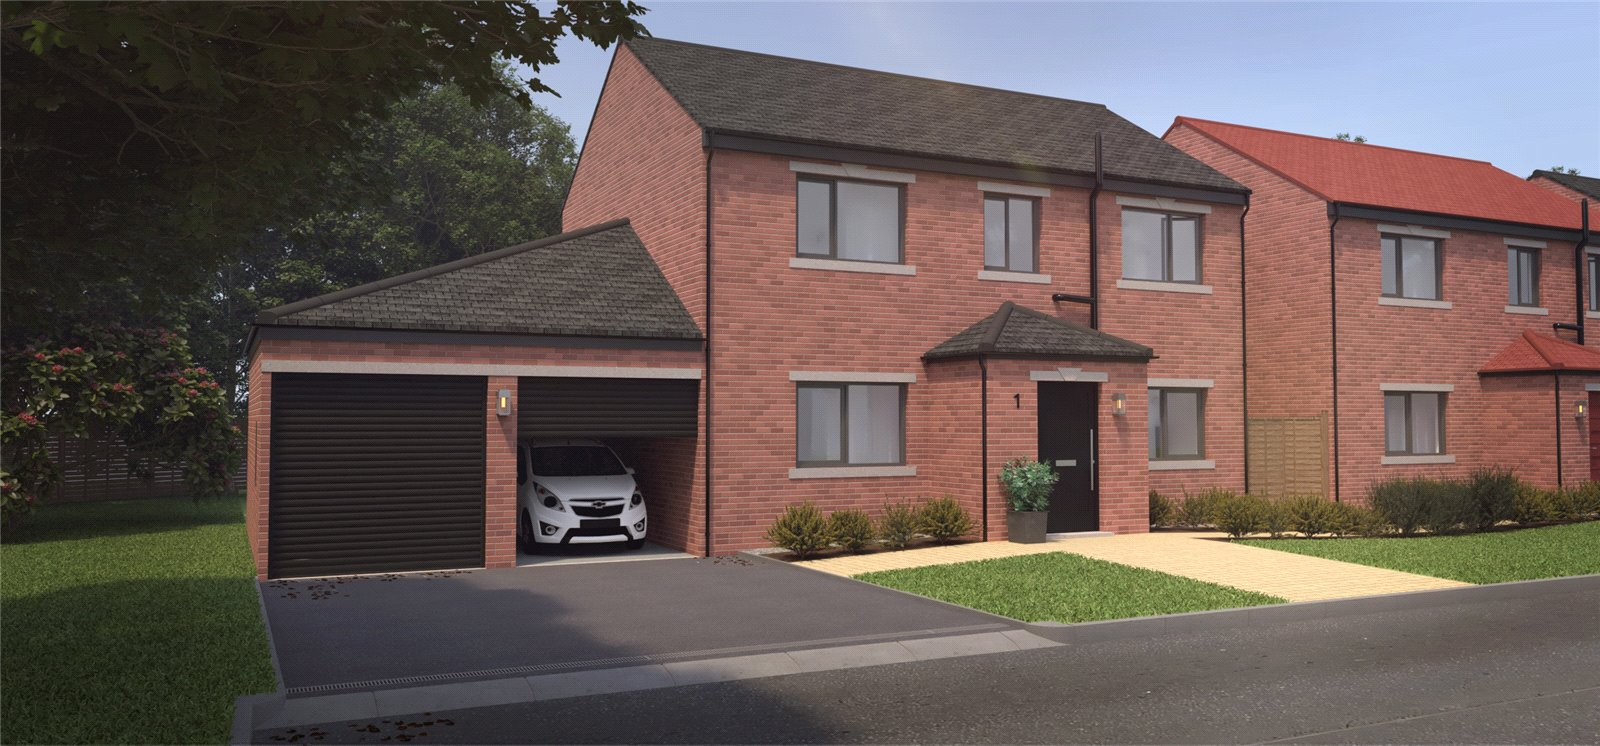 4 bed house for sale in Coach Road, Brotton - Property Image 1